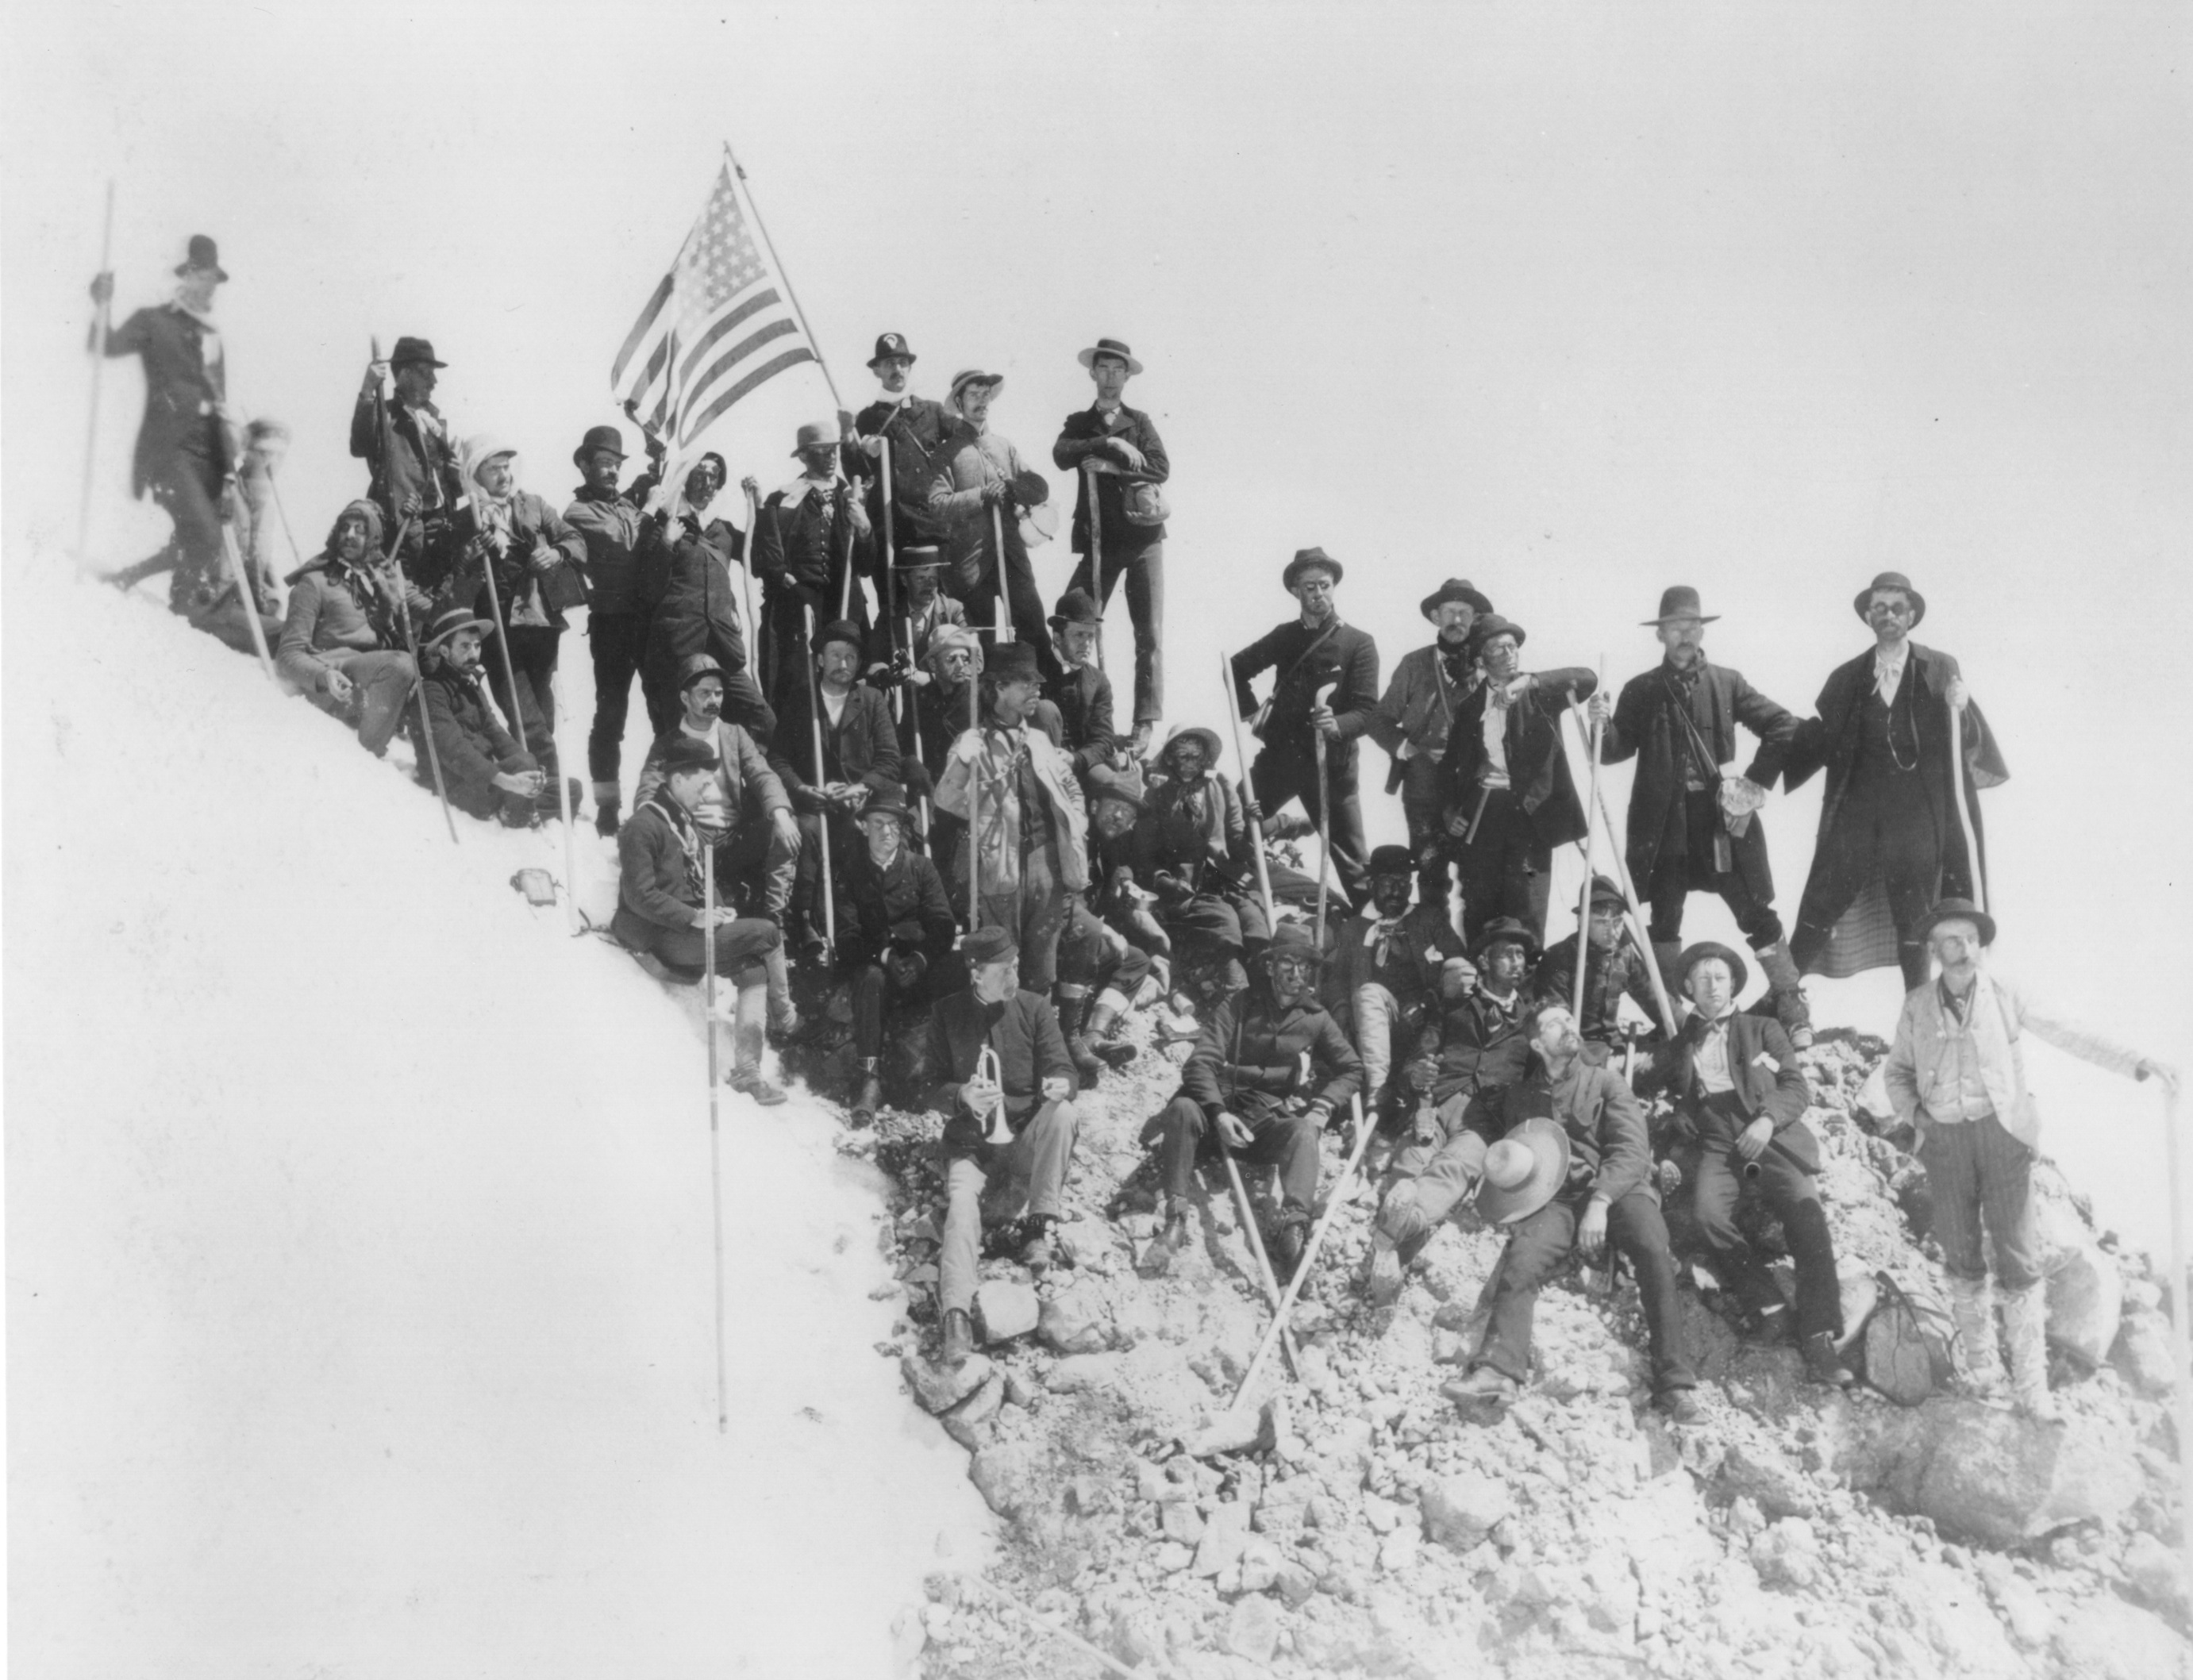 Mazamas reach the summit, 1894